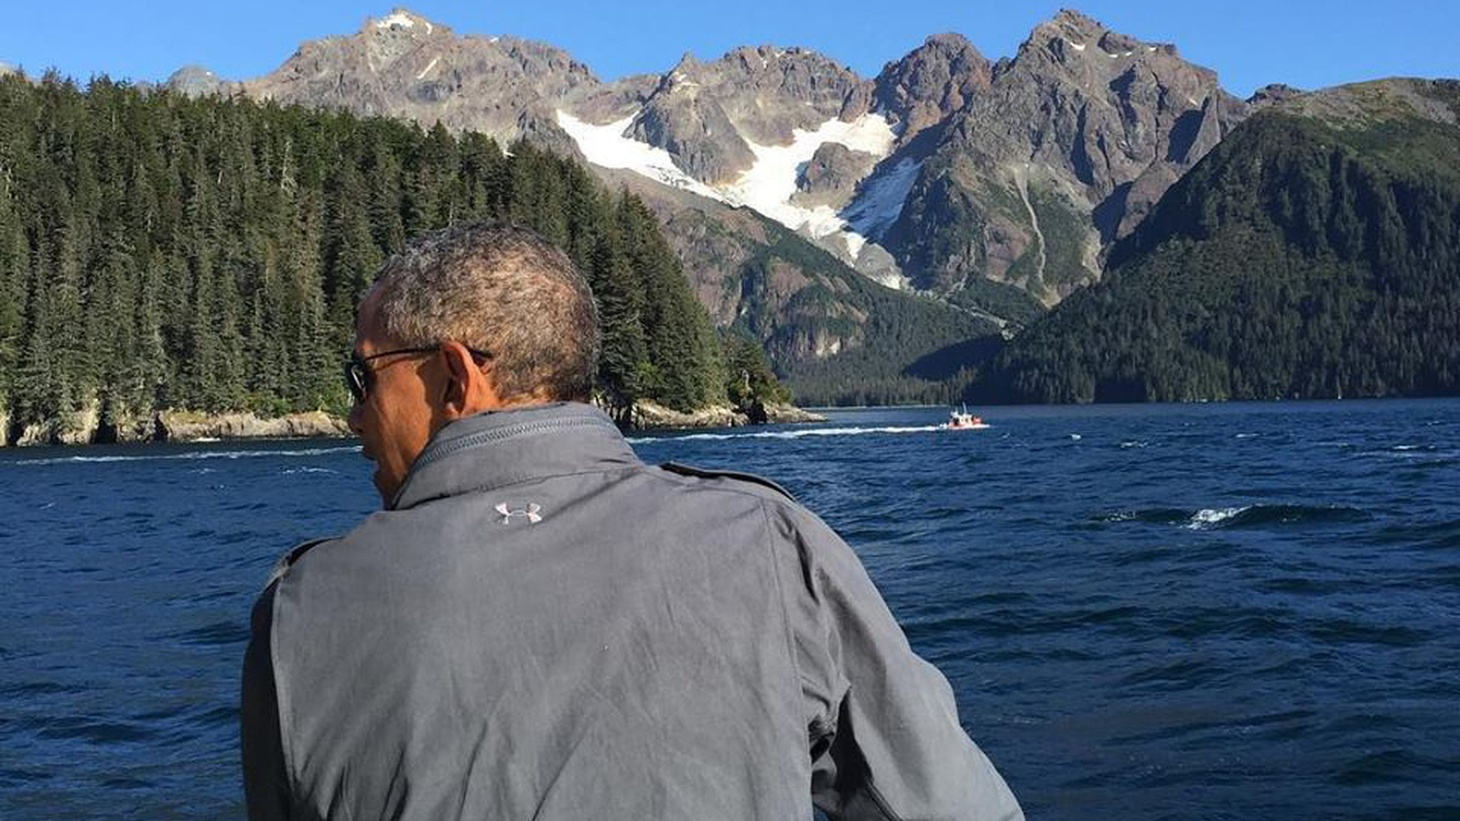 President Obama ends his Alaska visit today with more calls for urgent action on climate change. But is the US taking urgent enough action to get a foothold in the northern polar region where Russia, China and other nations have already staked claims?